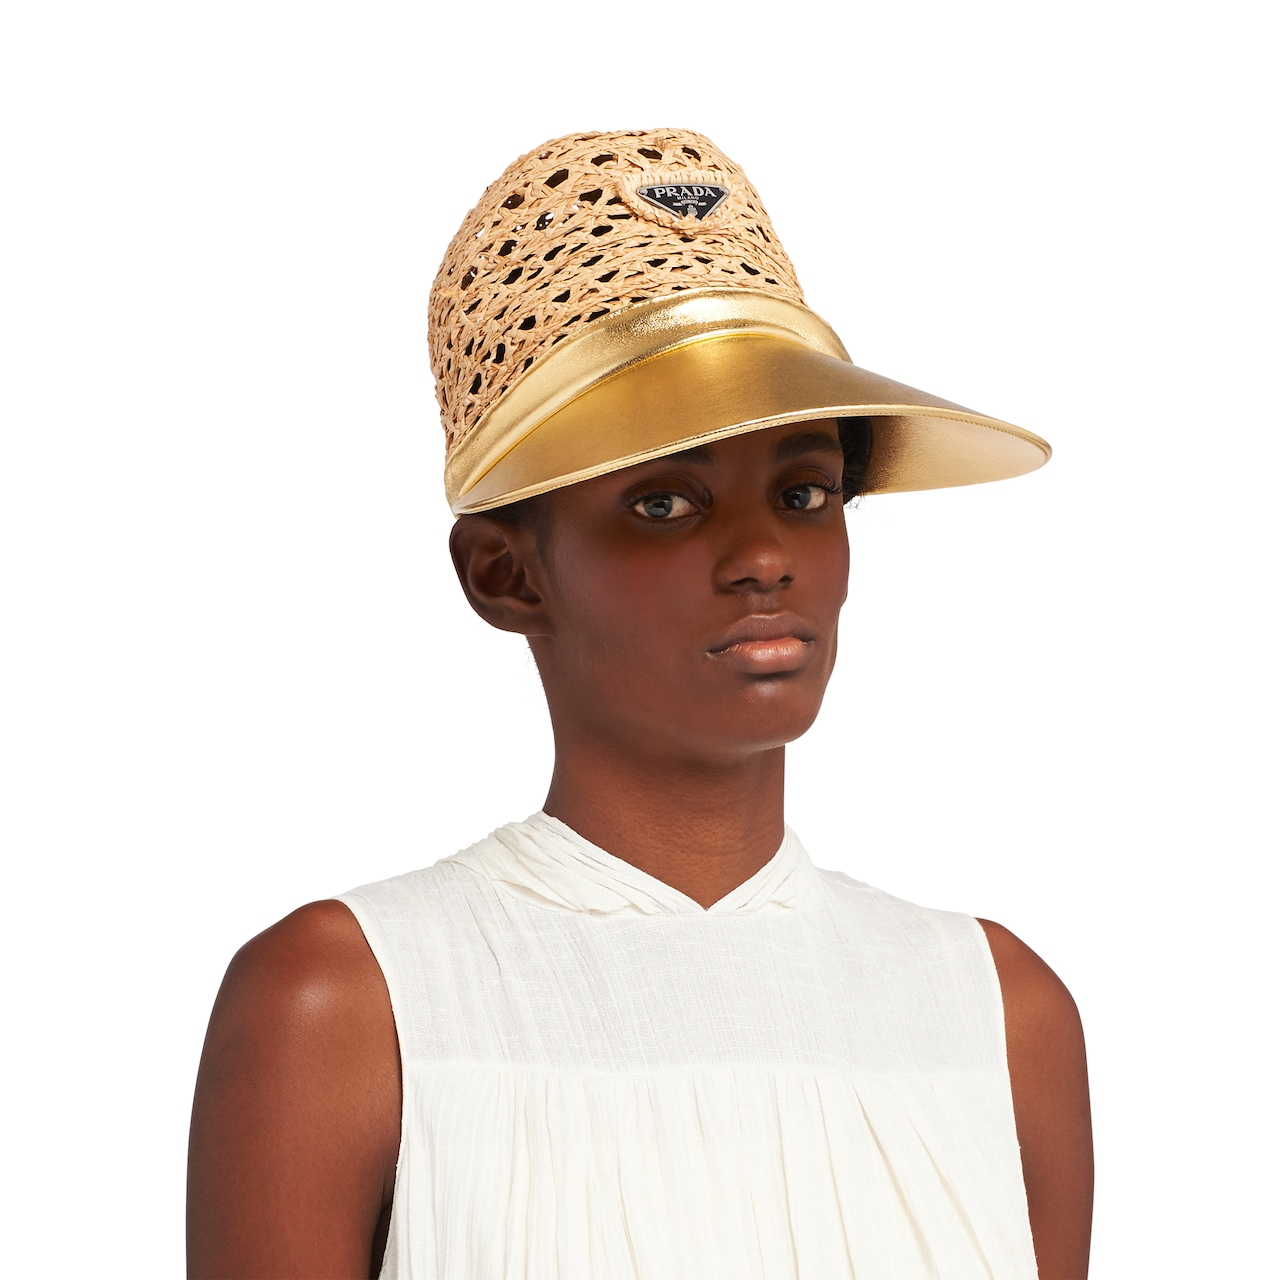 Prada Raffia and nappa leather visor hat 2